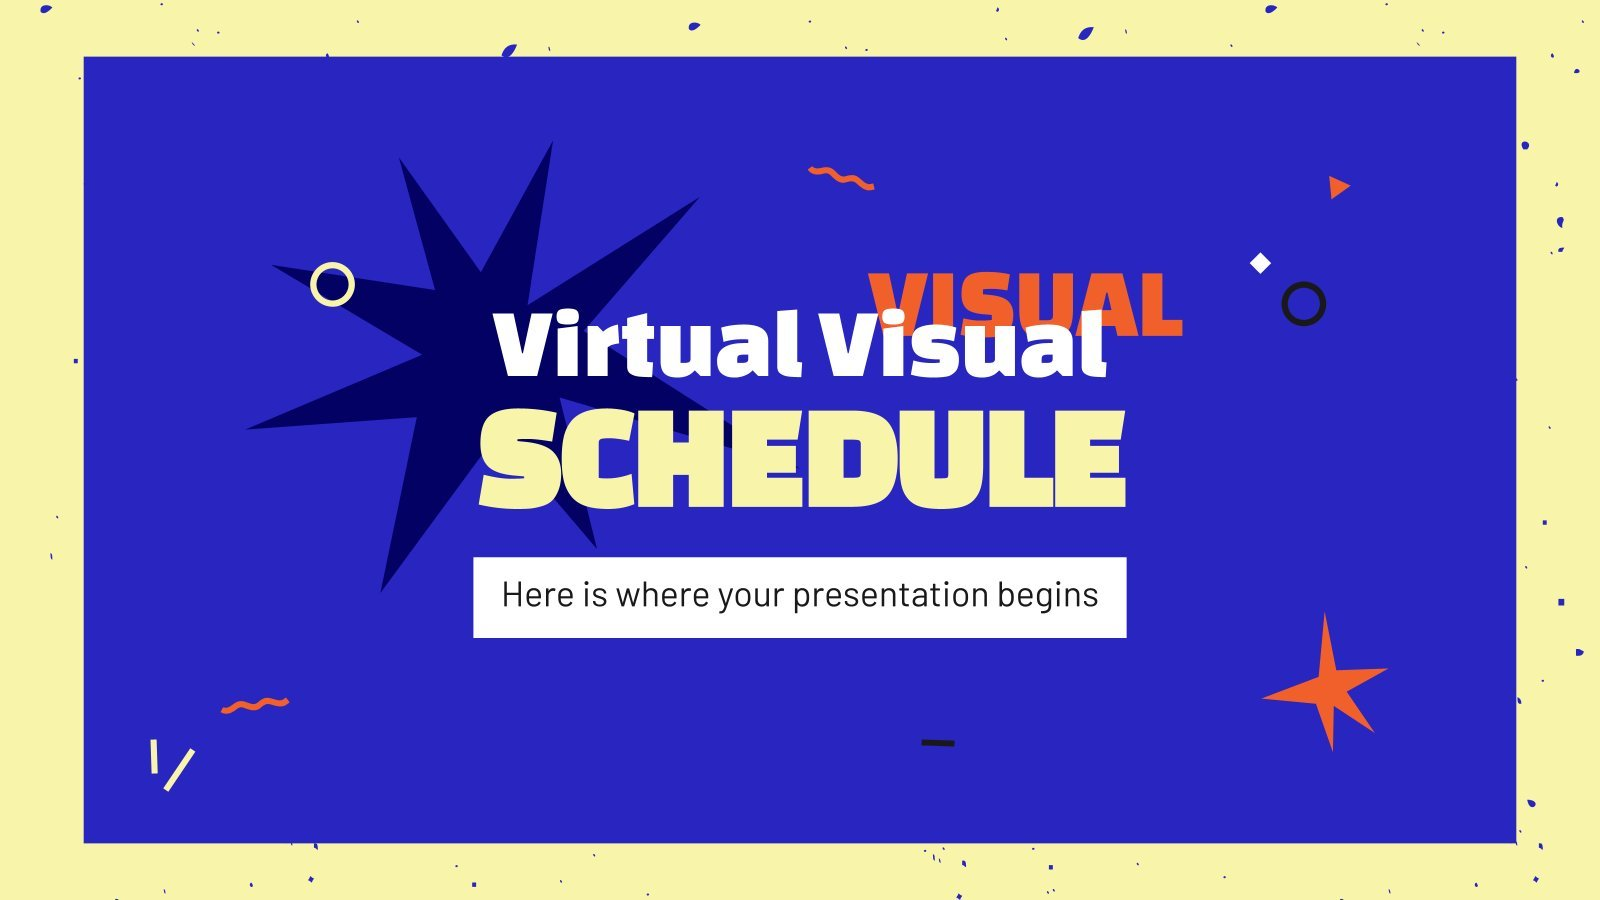 Virtual Visual Schedule presentation template